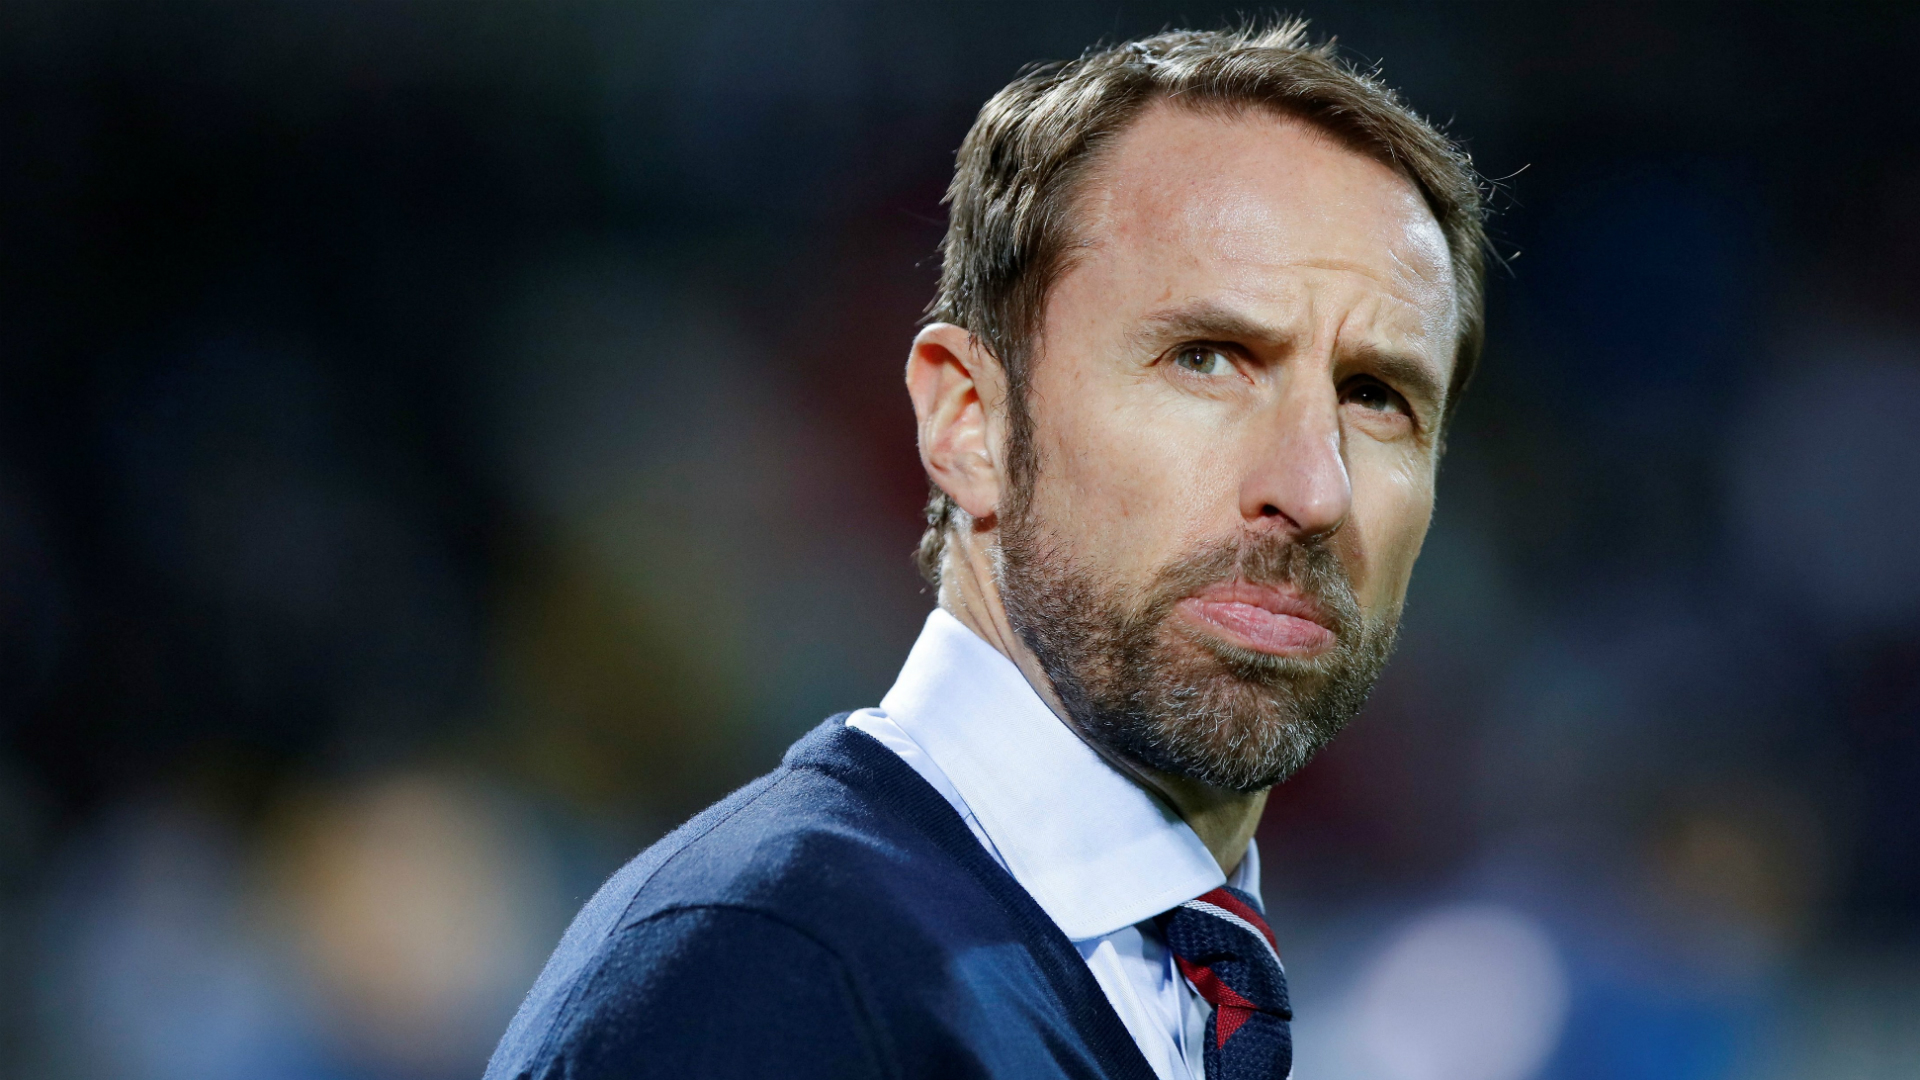 The 51-year old son of father (?) and mother(?) Gareth Southgate in 2021 photo. Gareth Southgate earned a 3 million dollar salary - leaving the net worth at  million in 2021